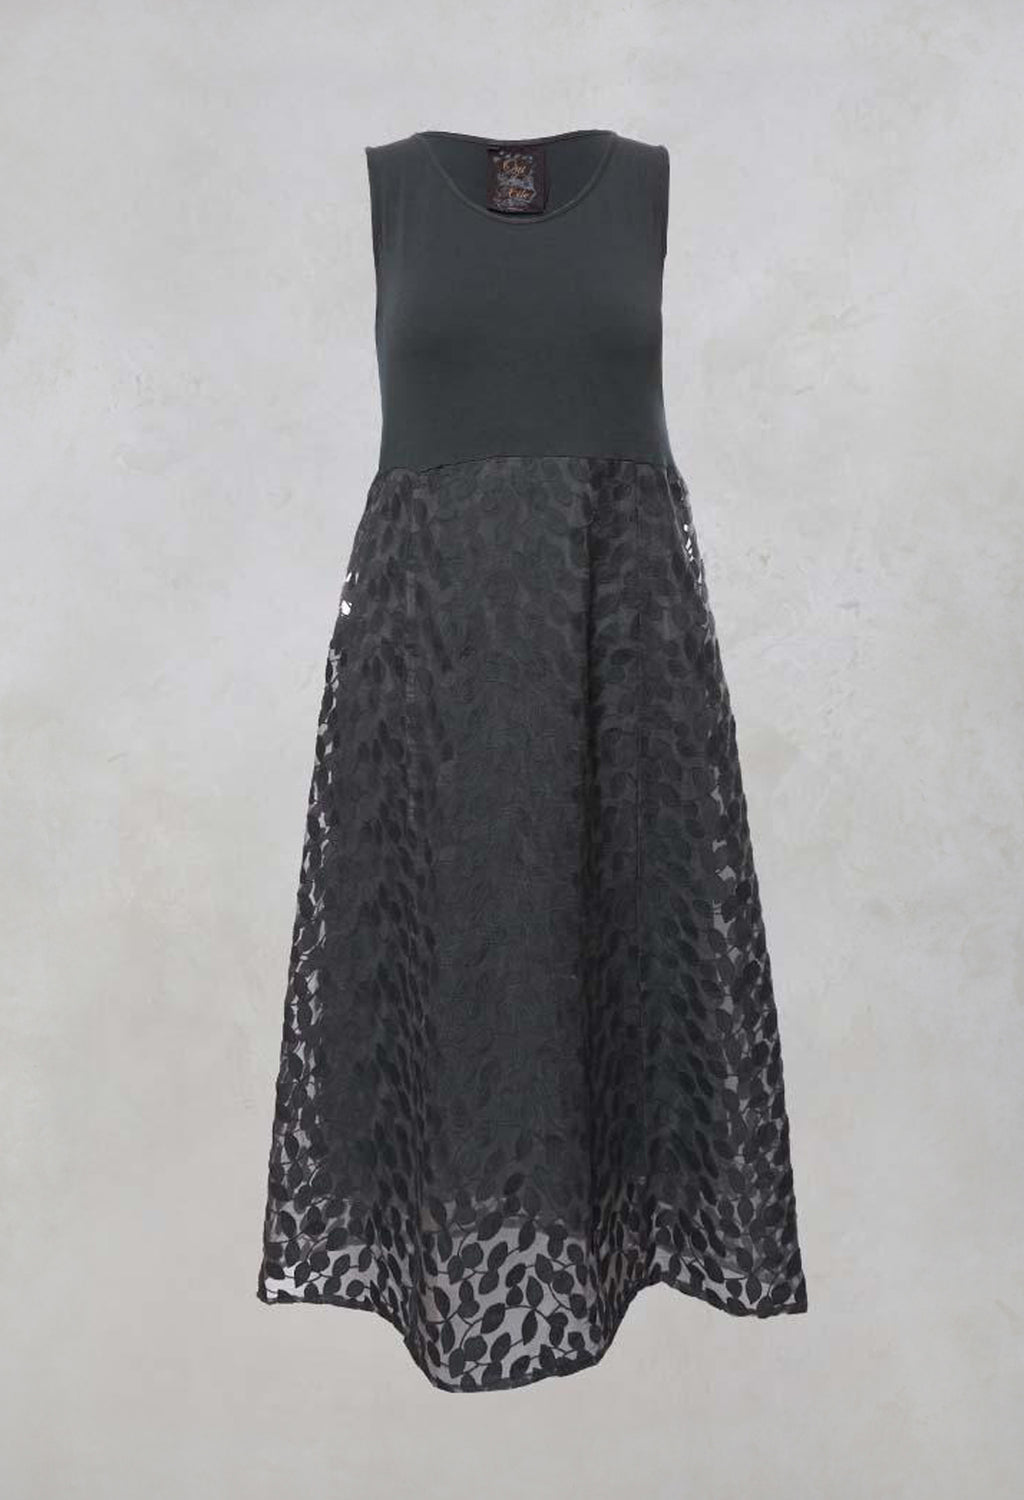 Sleeveless Dress with Contrast Printed Skirt in Charcoal